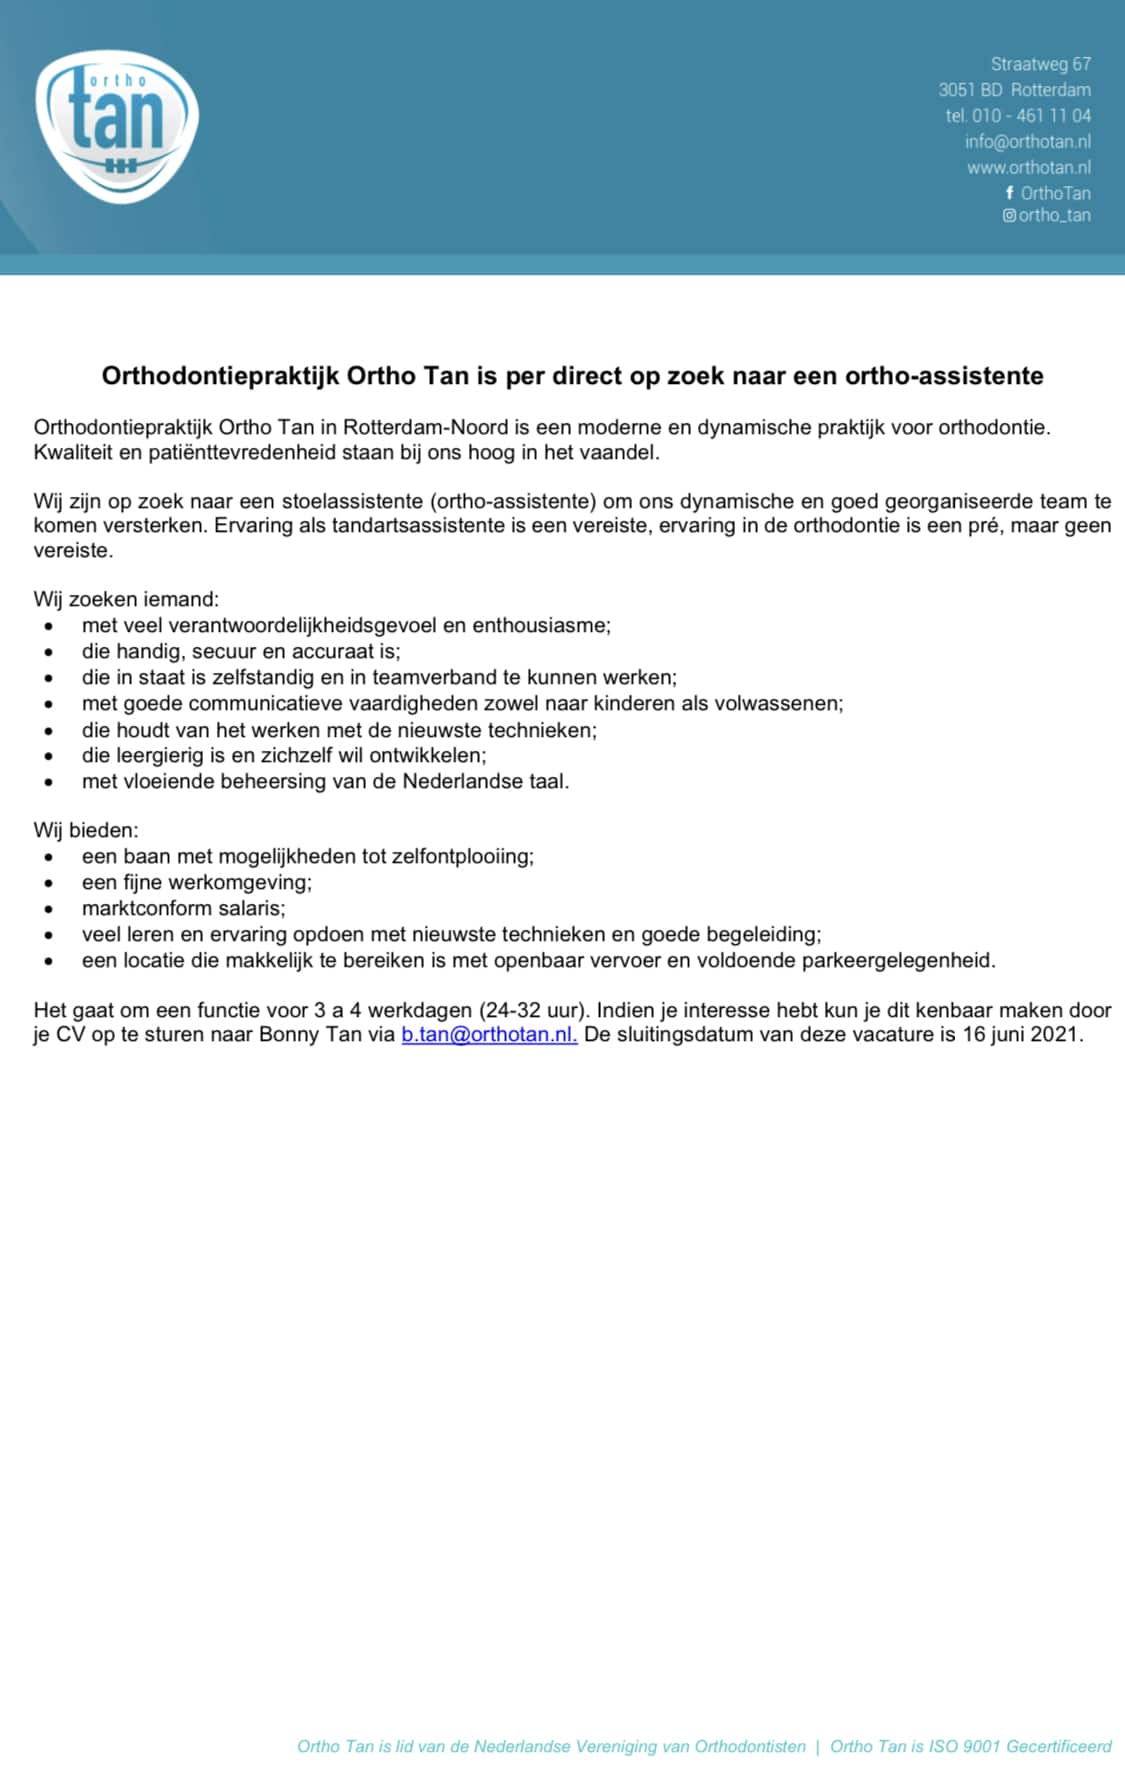 Ortho Tan Vacature: Ortho-assistente, Rotterdam